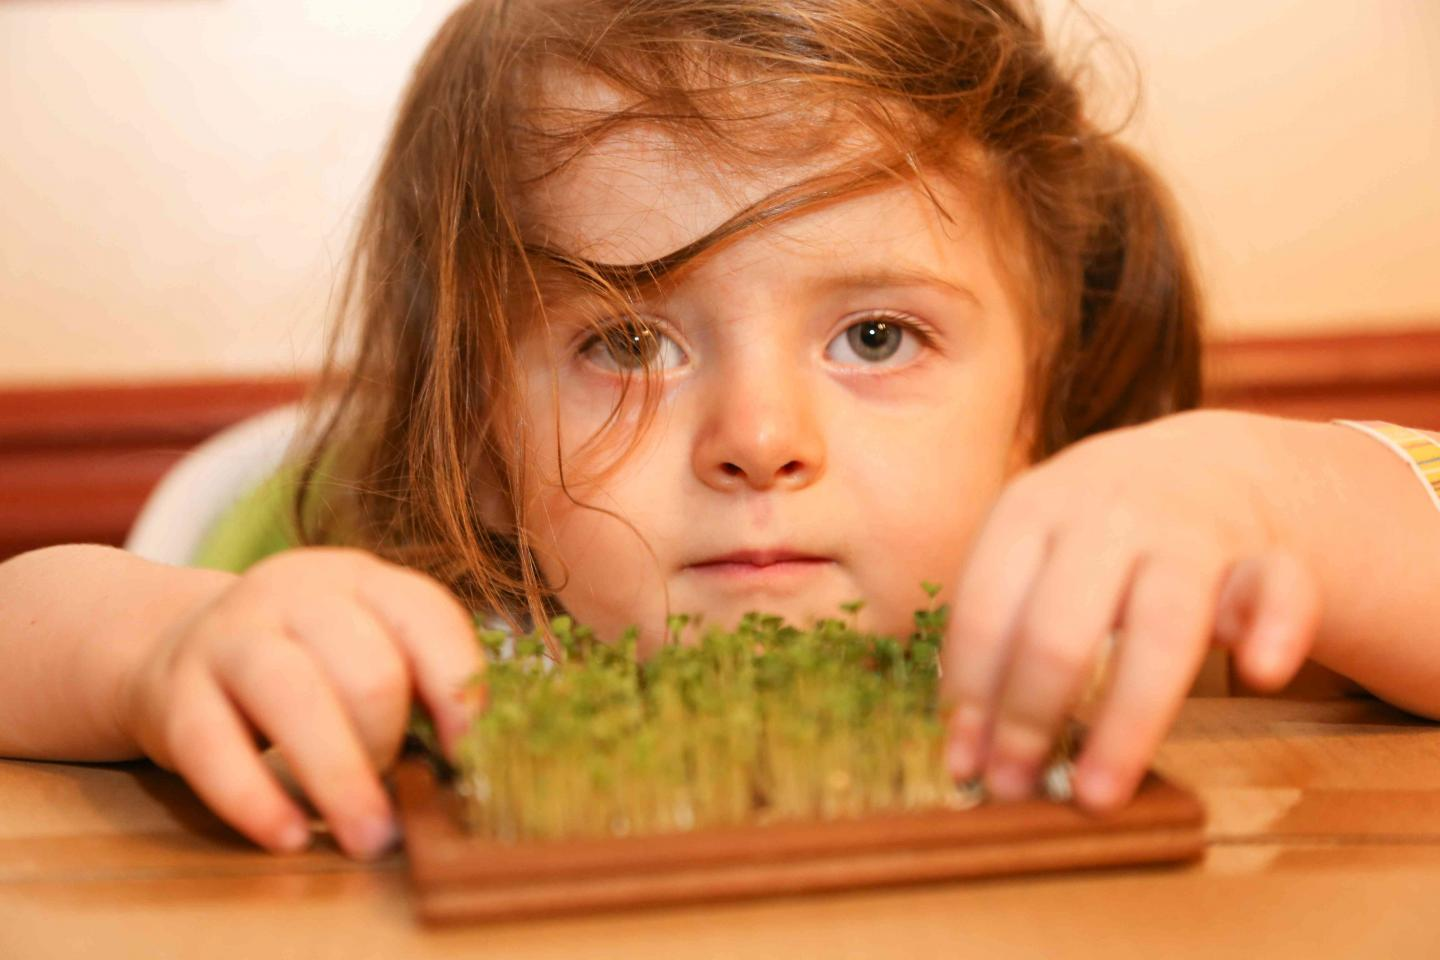 Sedlak's Daughter Grows Broccoli Sprouts